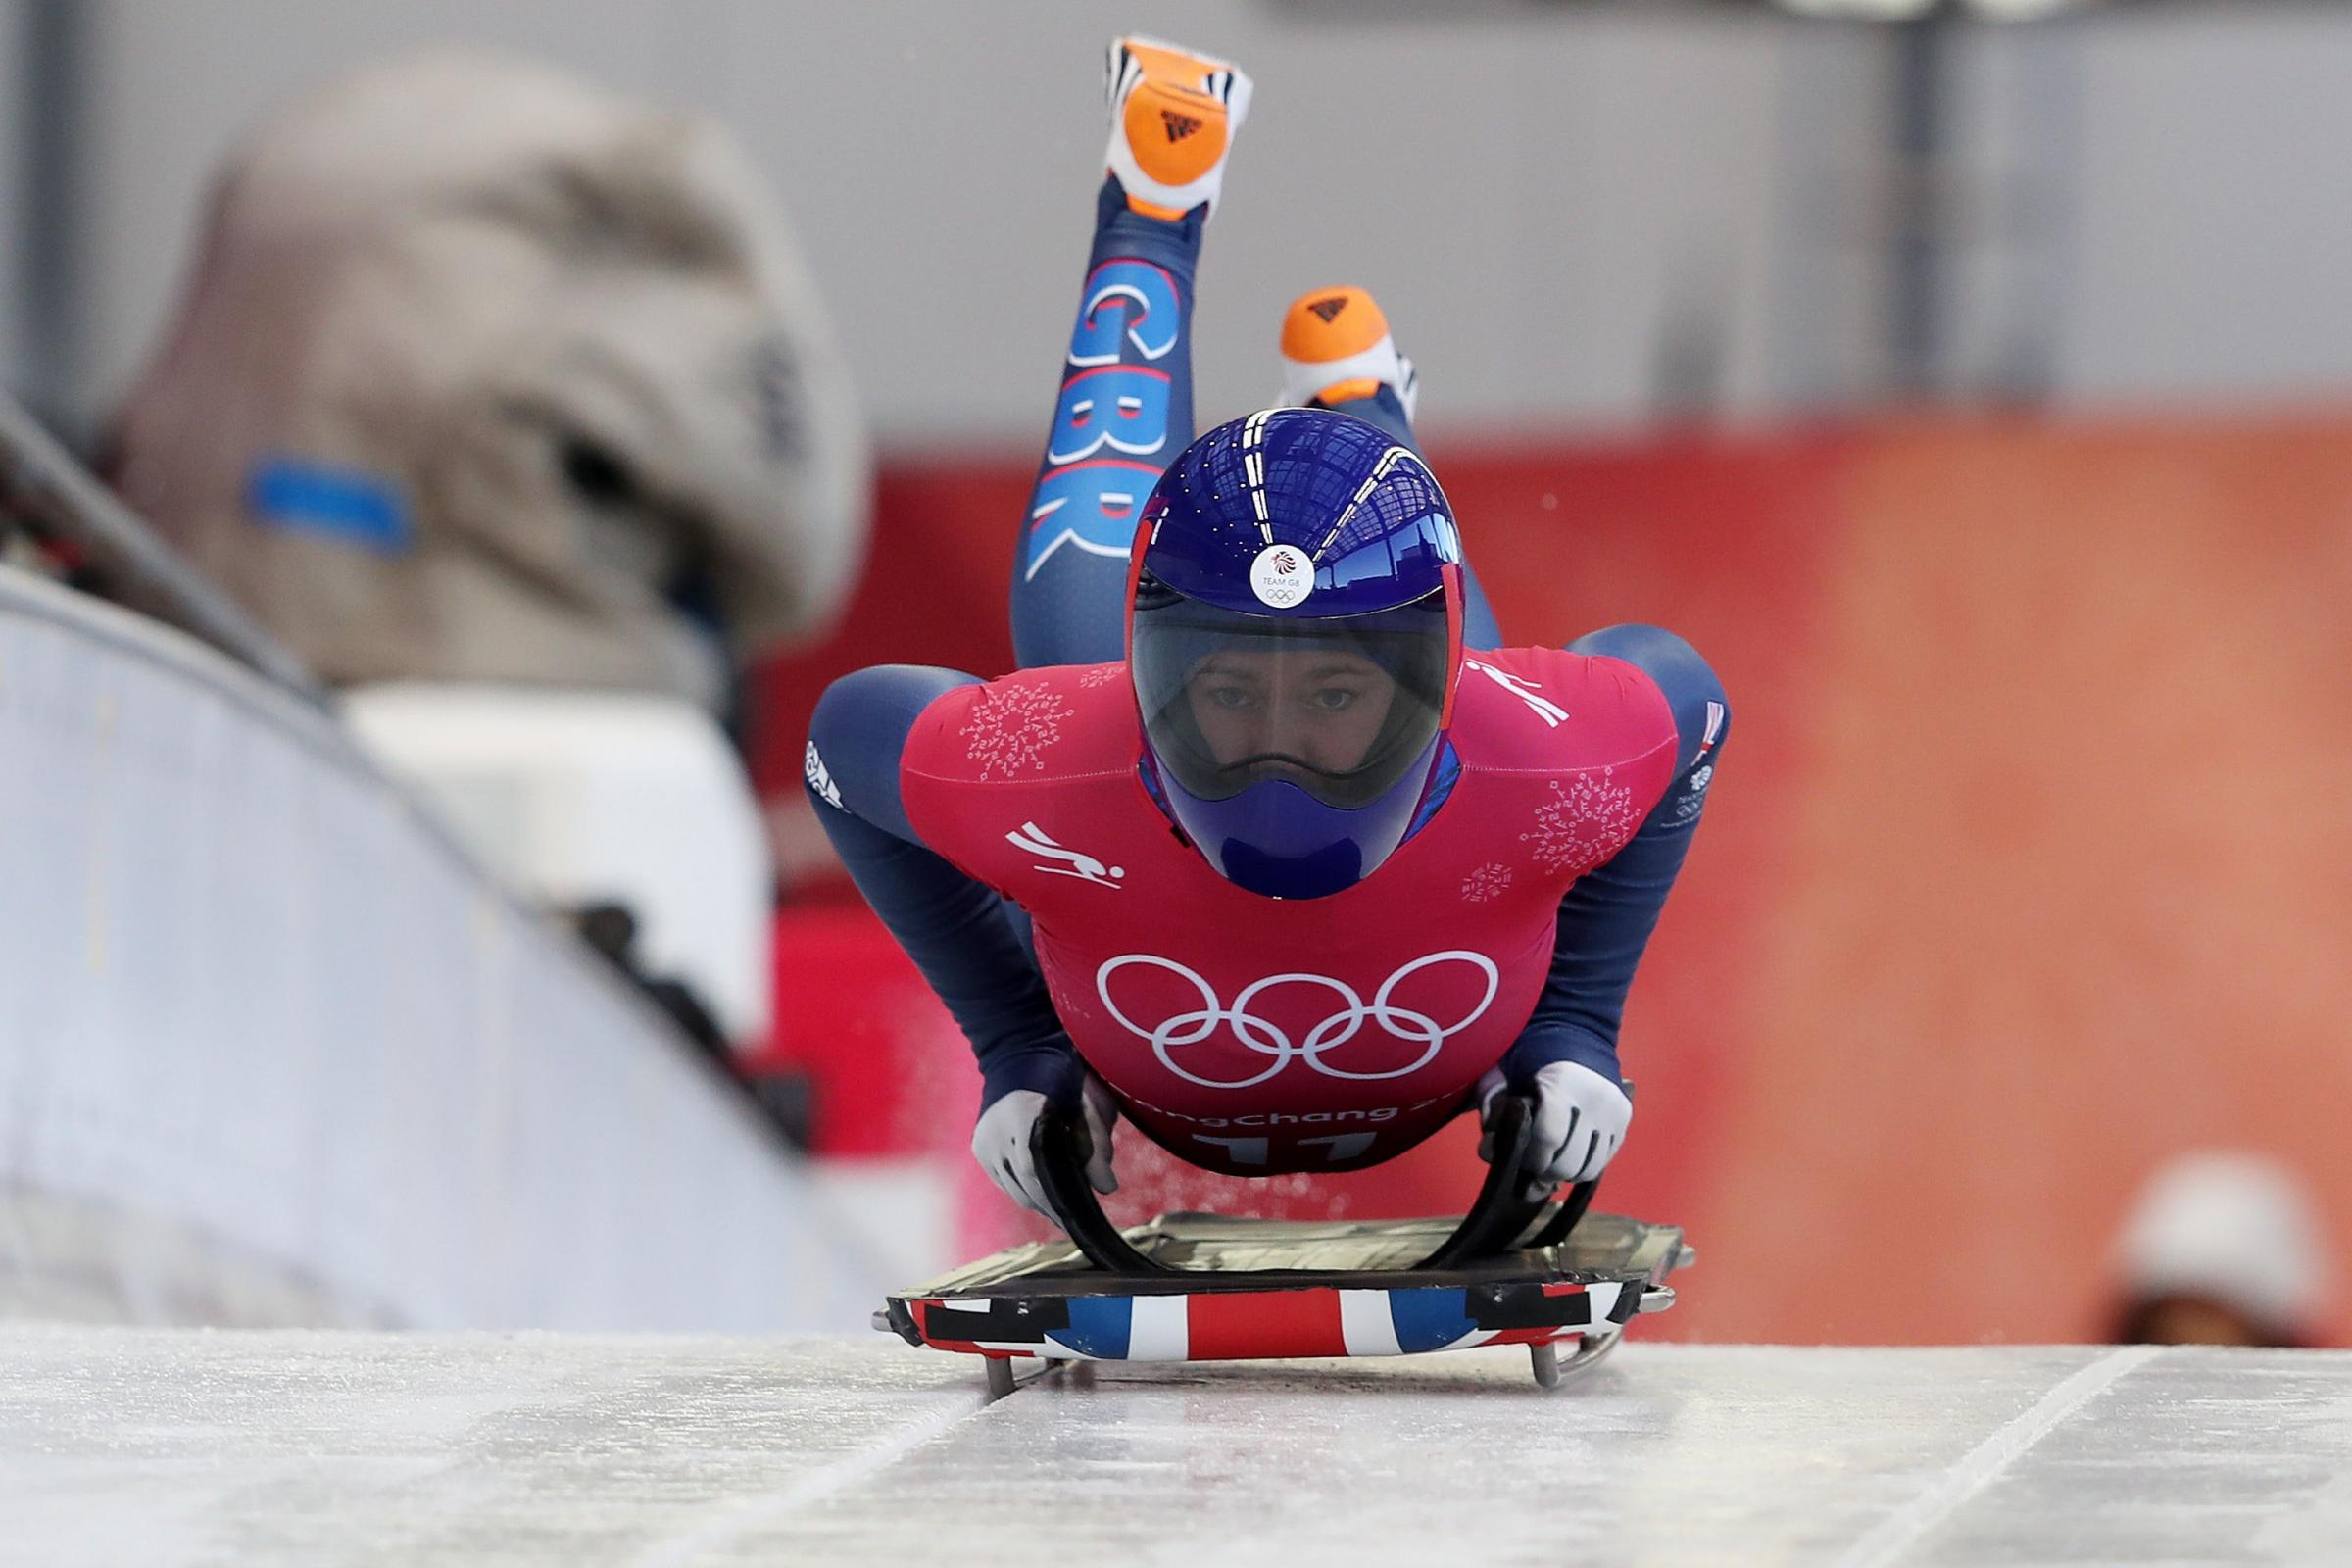 Lizzy Yarnold's skinsuit has been given official approval by skeleton officials after complaints by rivals (David Davies/PA Images)